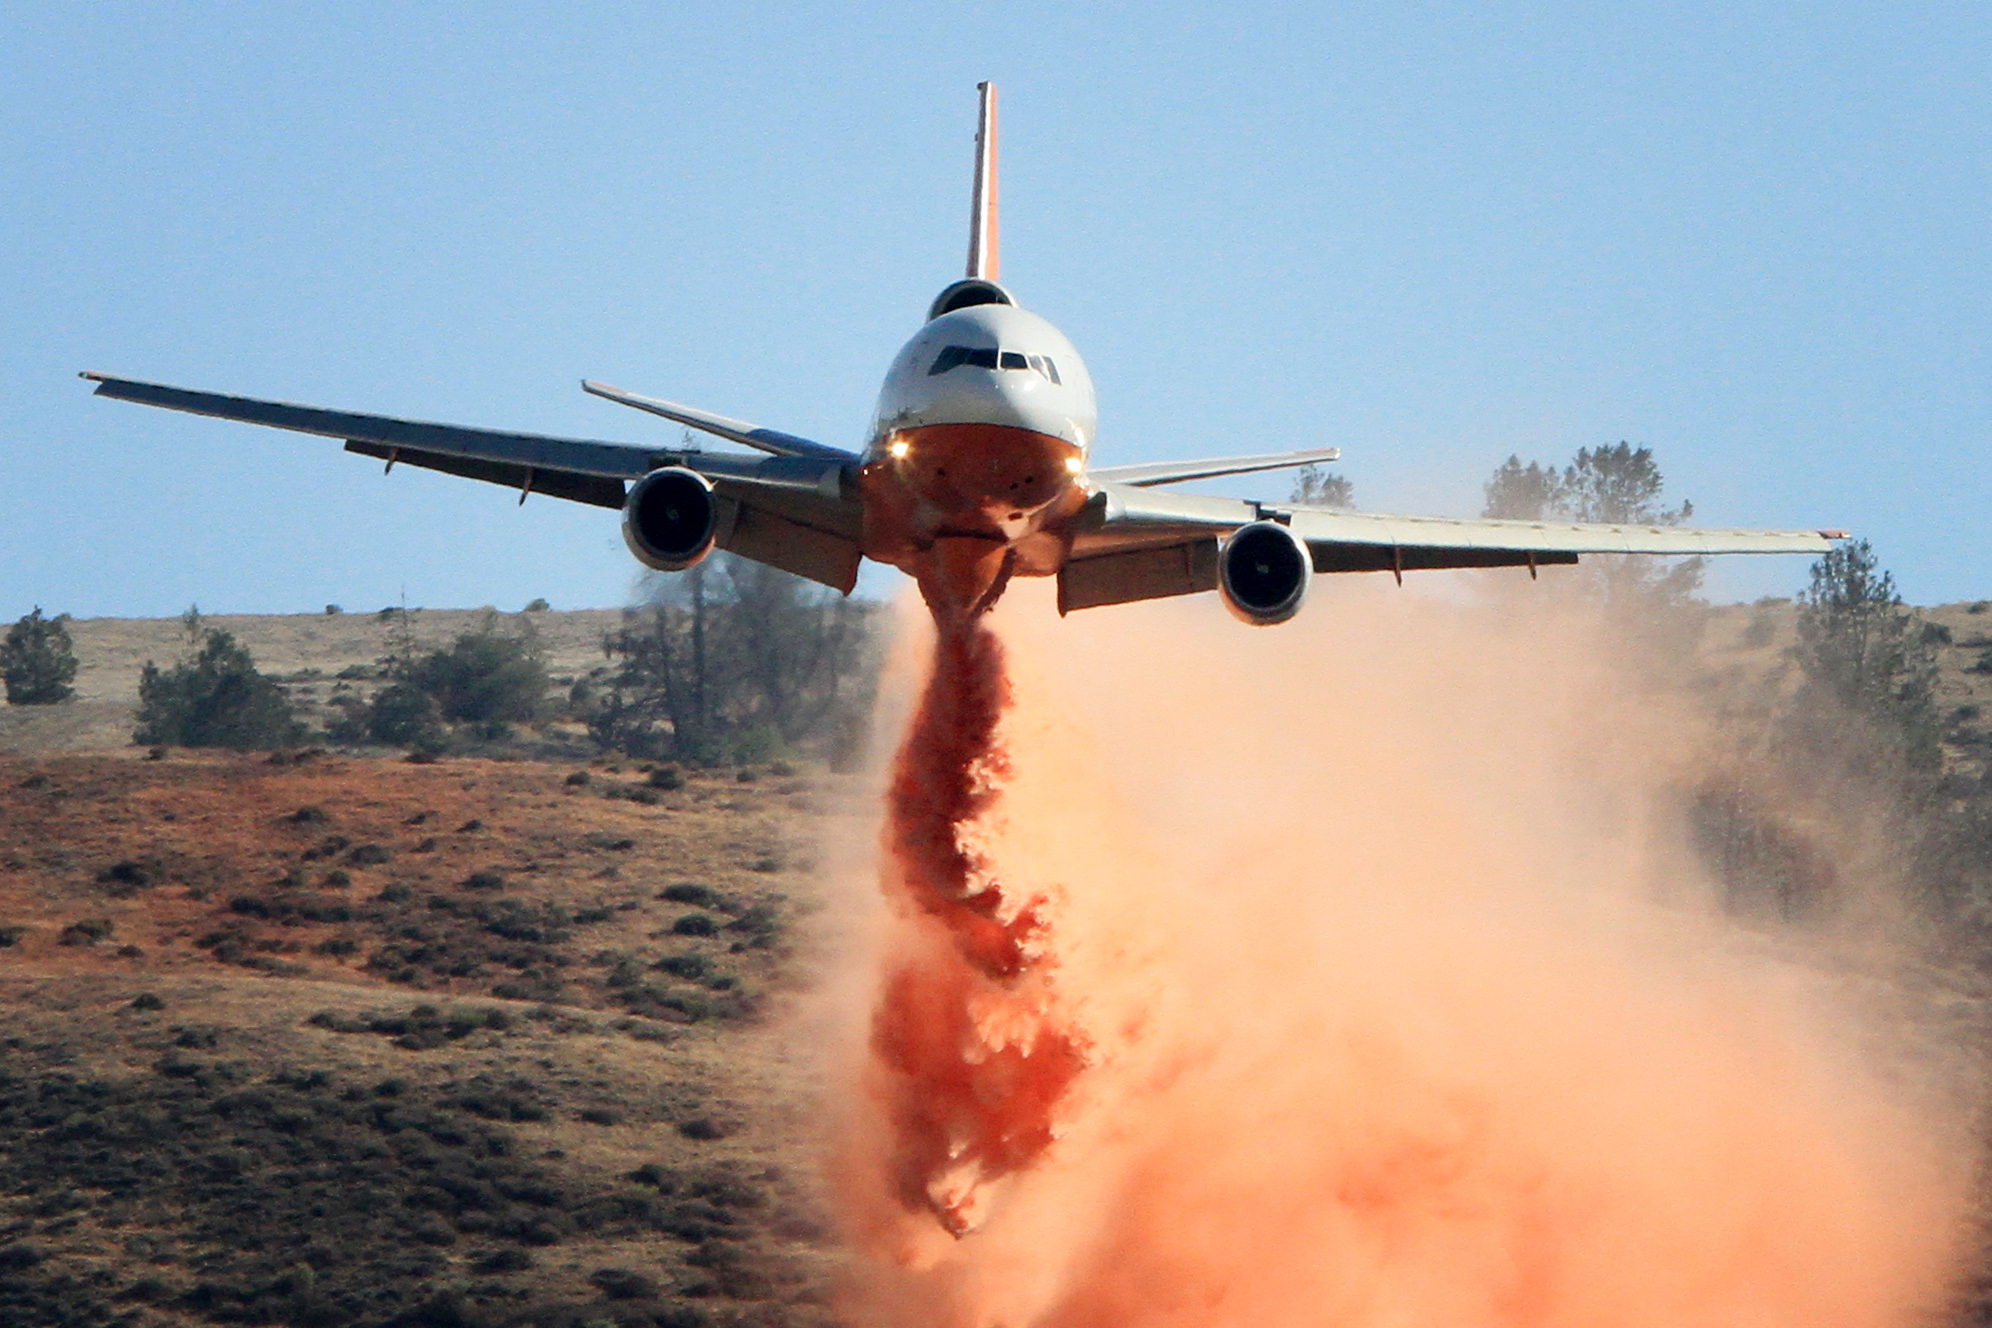 Jeff Zimmerman sent this image of an air tanker working to contain the Powerhouse fire in the Western Antelope Valley, Sunday, June 2.